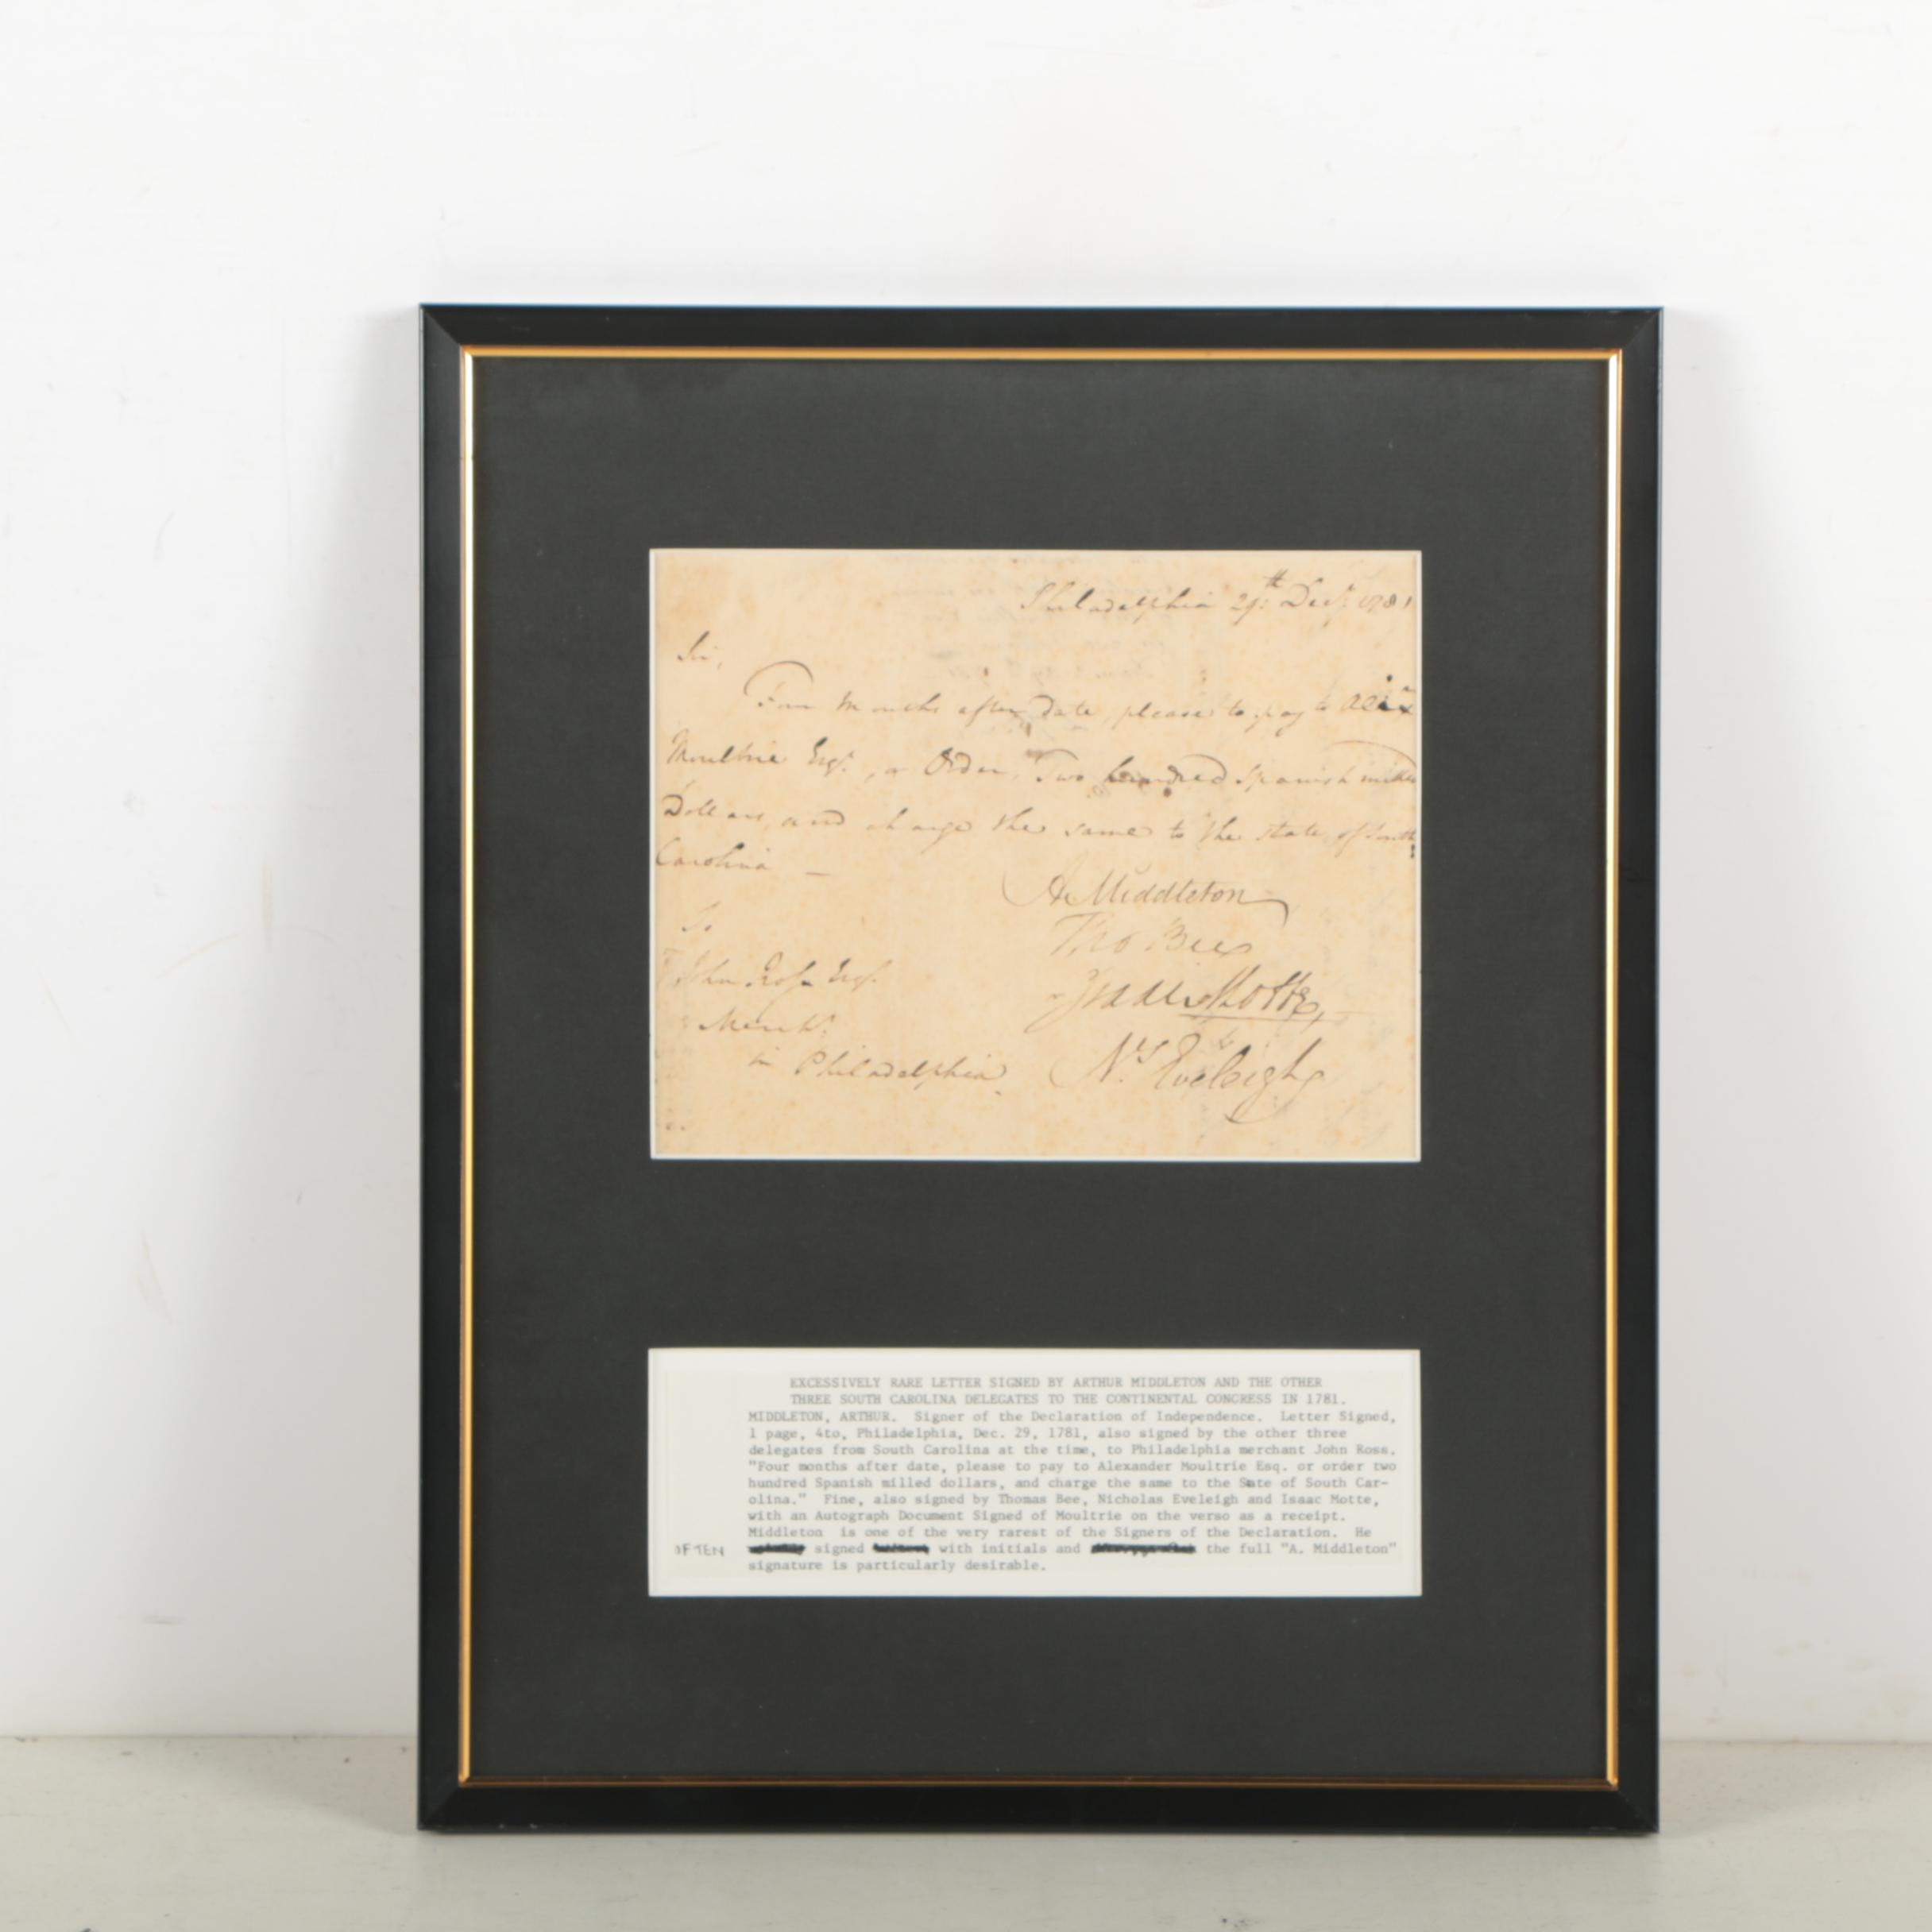 Arthur Middleton Document Signed as Member of Continental Congress